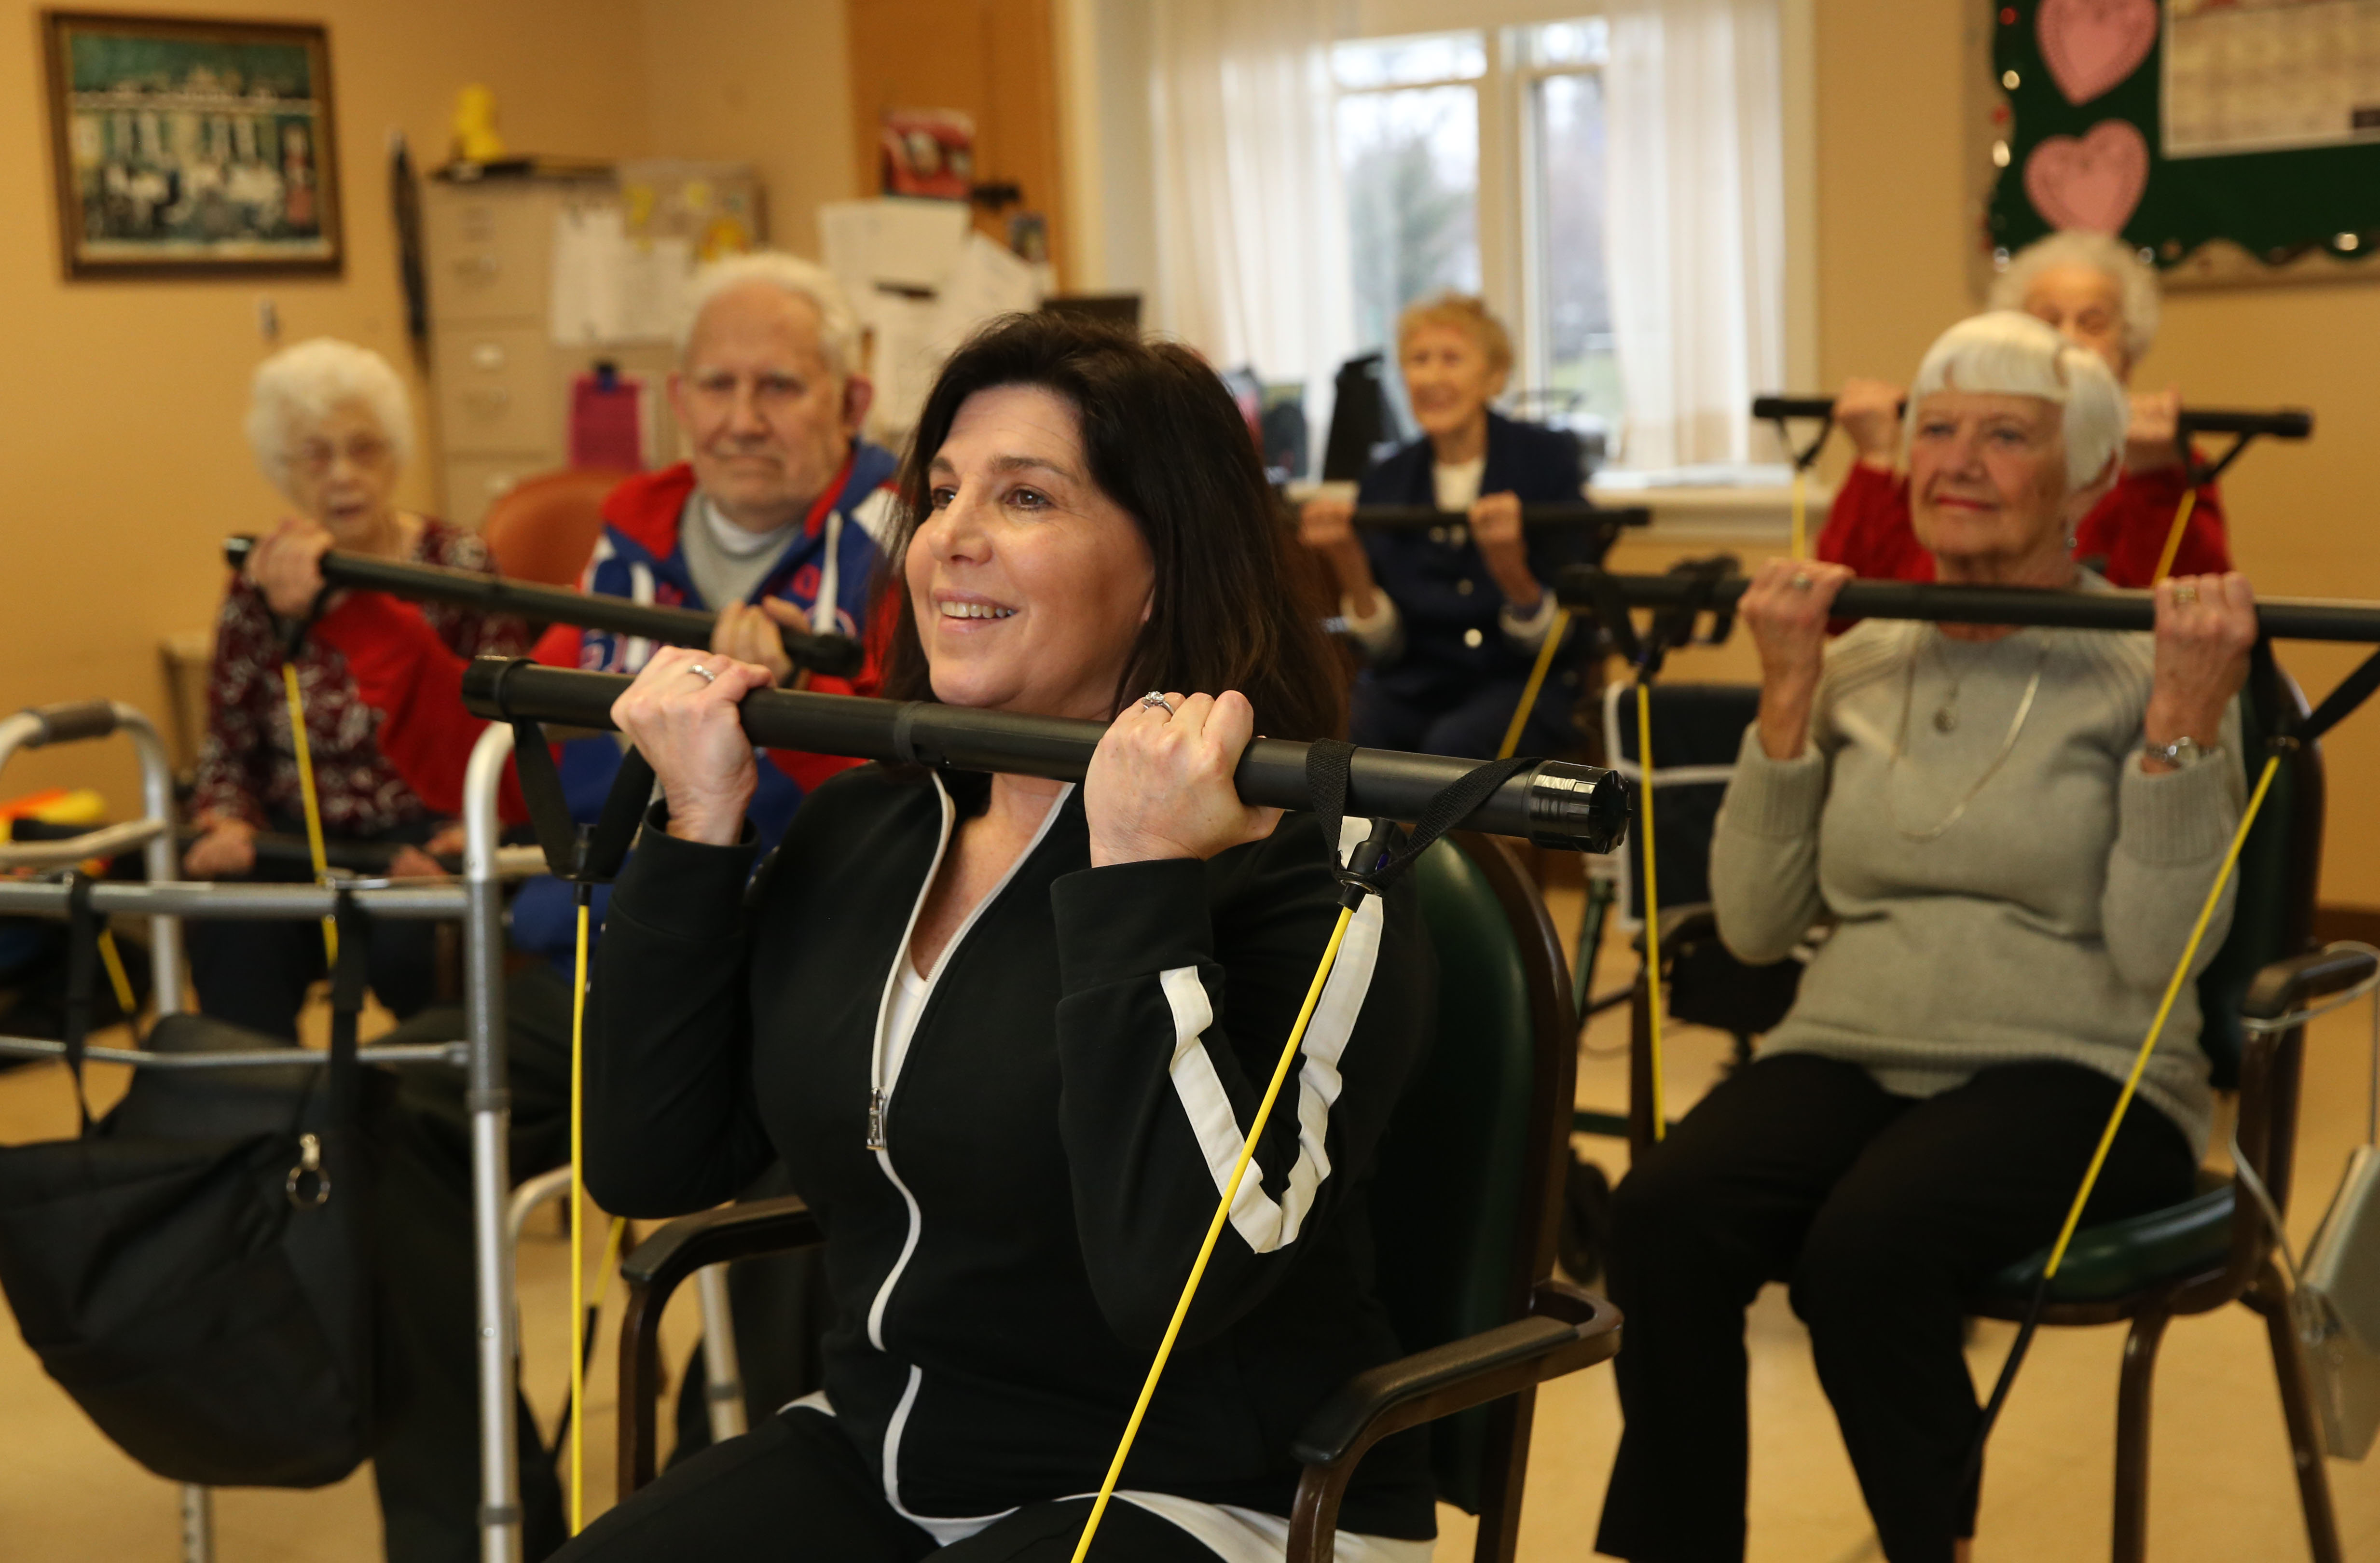 Elderwood Village at Williamsville residents, including those who have trouble walking, take fitness classes from Jill Bronsky, which helps improve balance and lower the risk of falling. She'll sign her new book at the facility on Thursday. (Photo by Sharon Cantillon/Buffalo News)